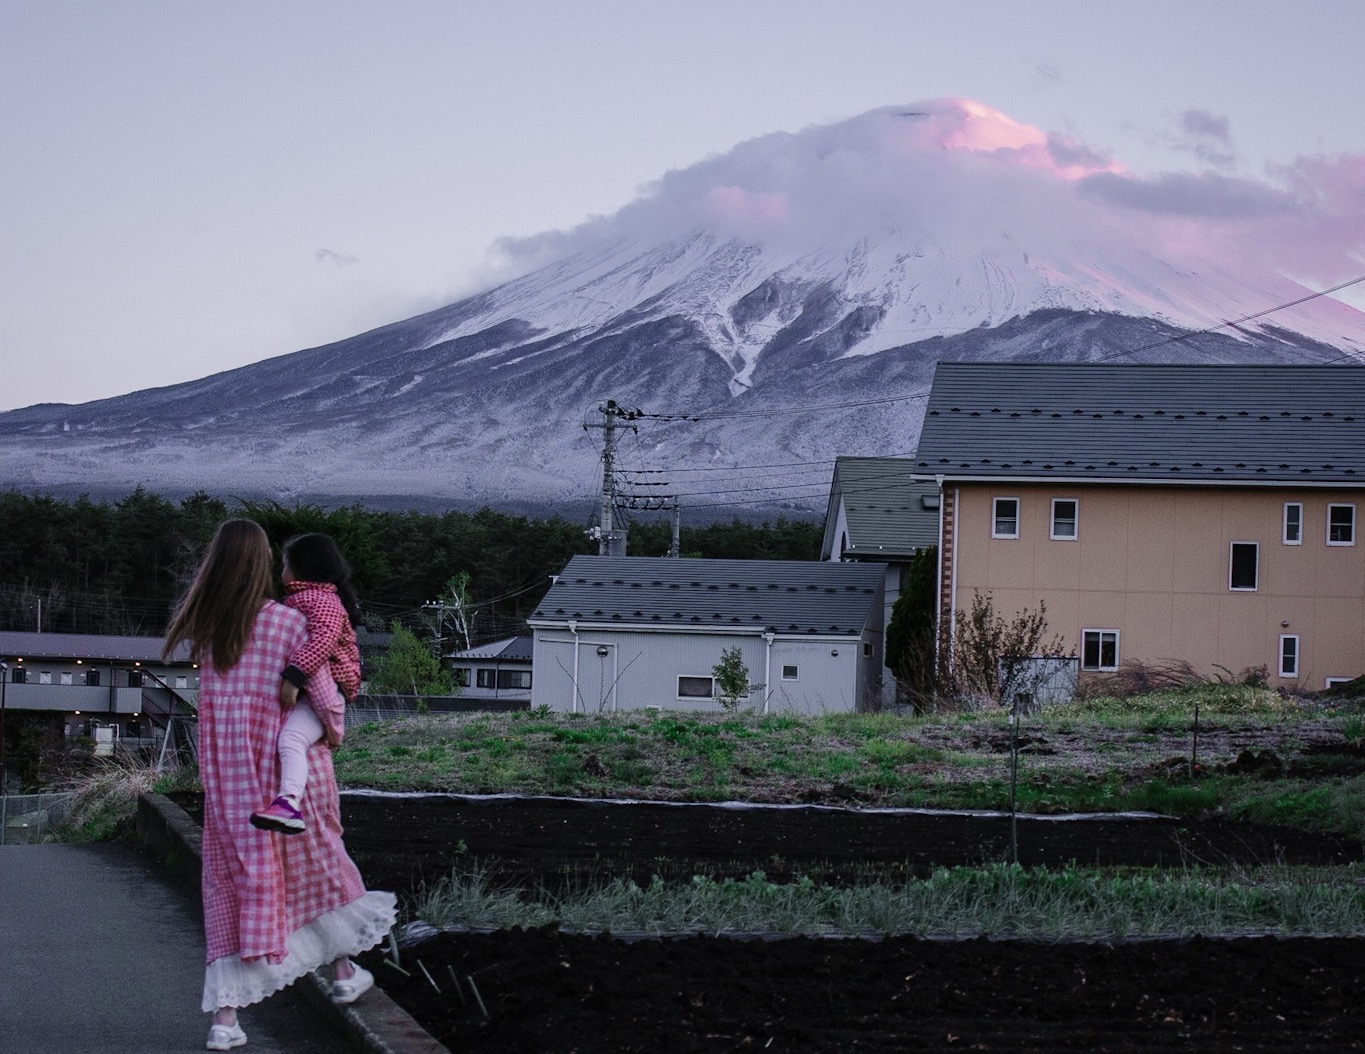 Mt Fuji Kawaguchiko child-friendly hotel